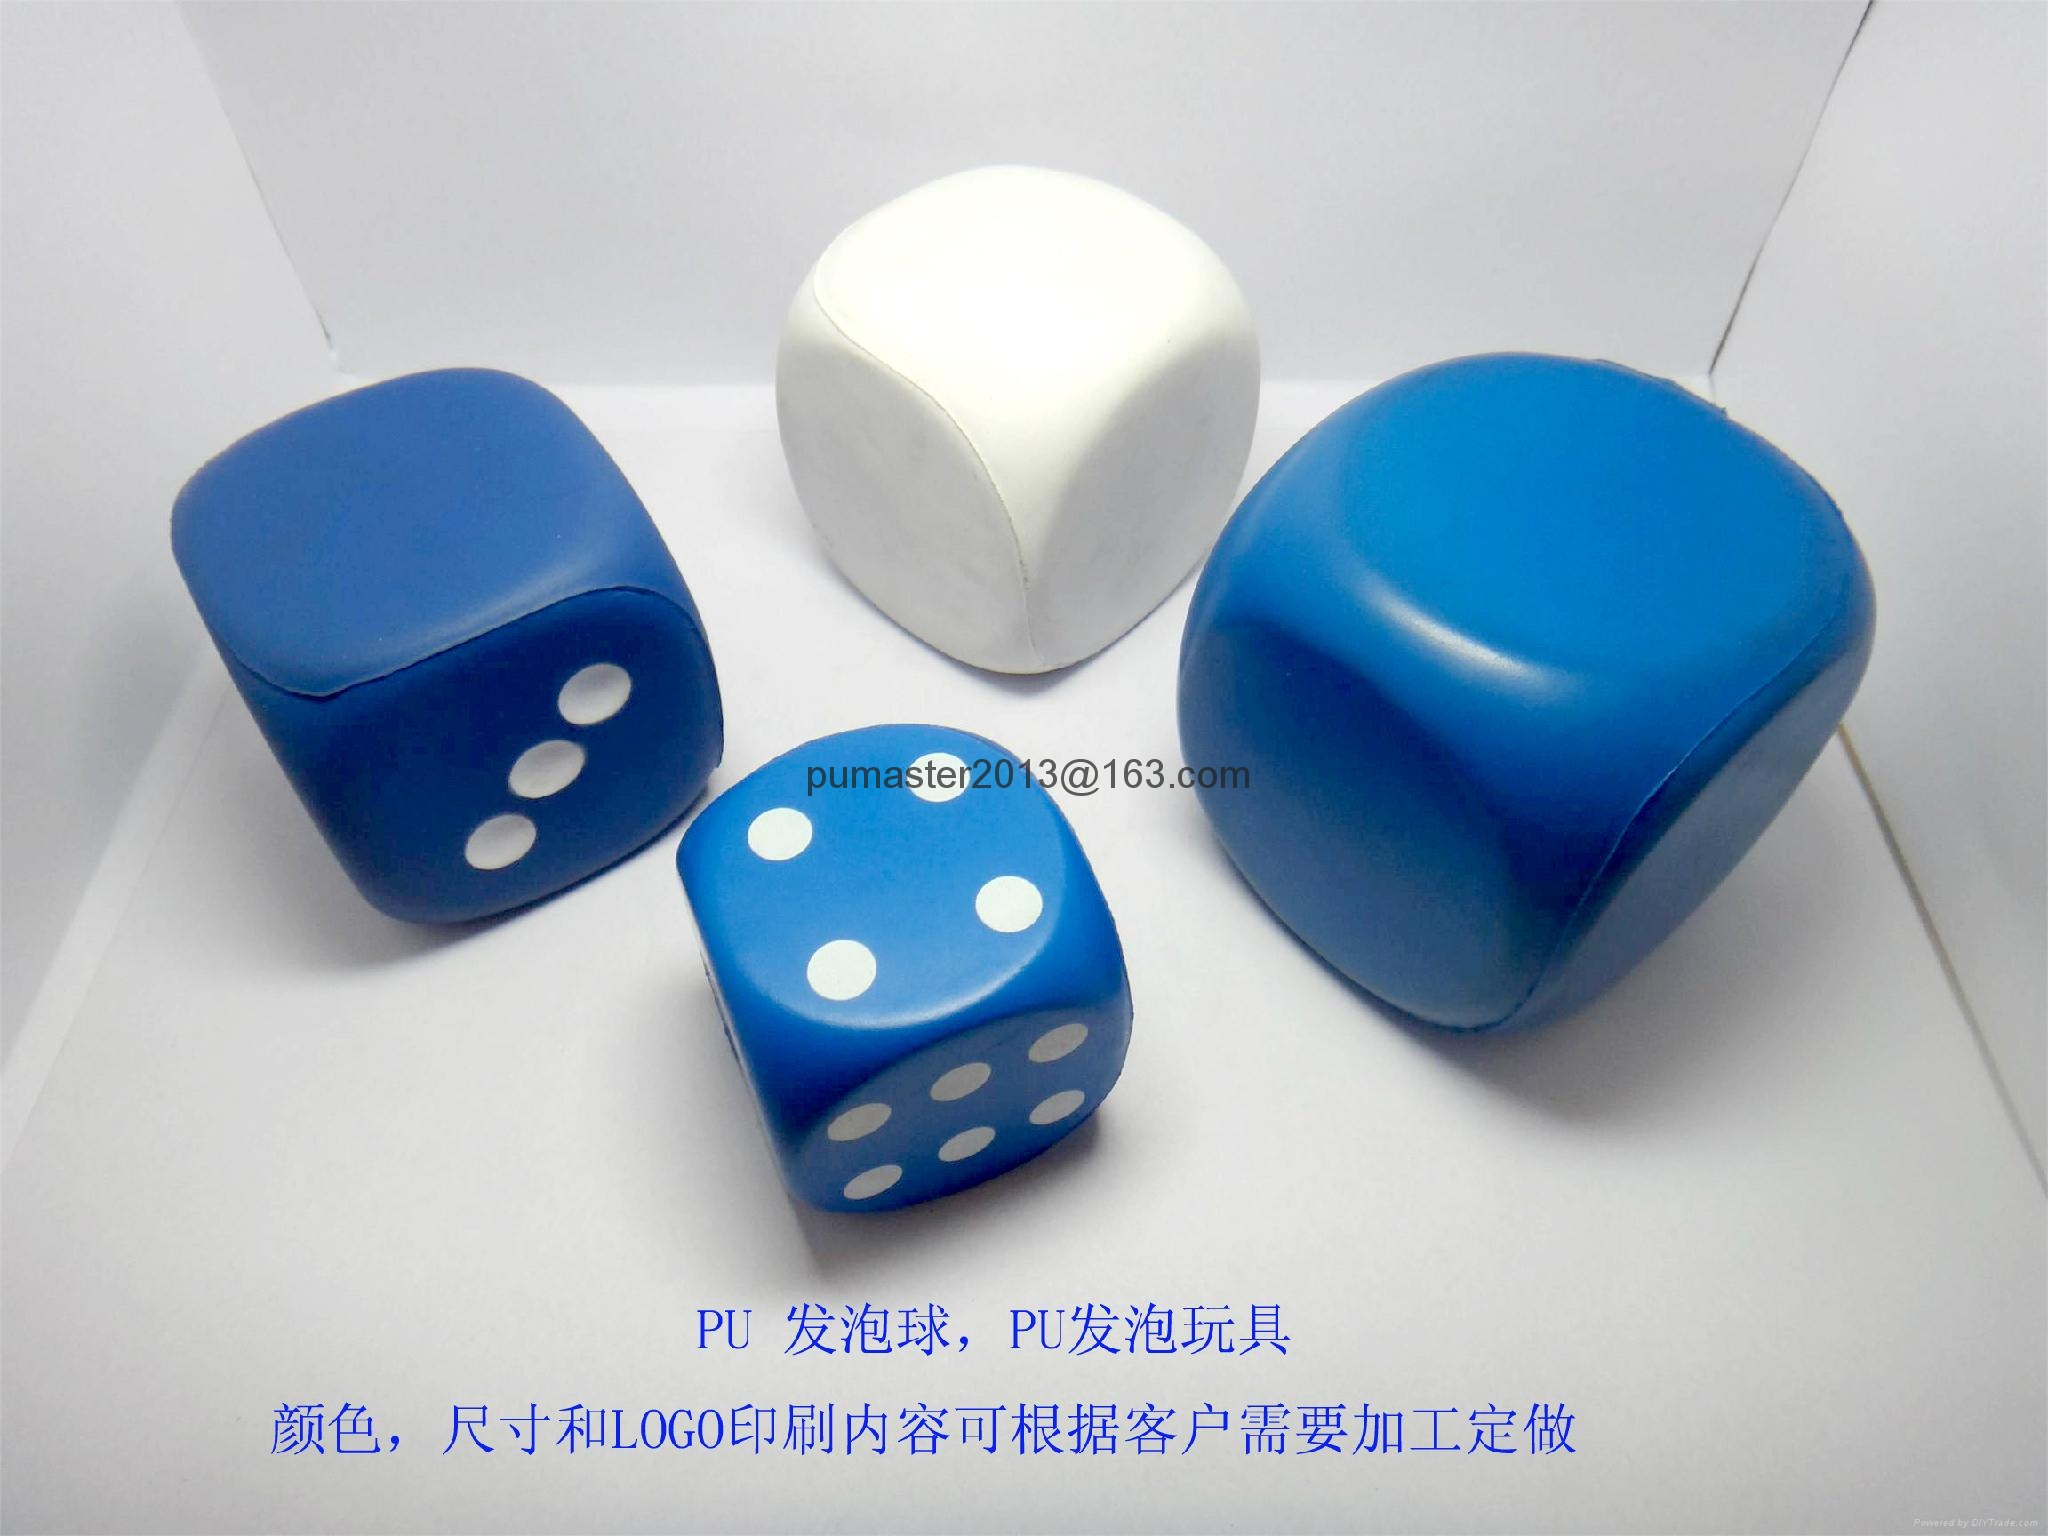 new product and hot sale of stress ball in our factoty 2